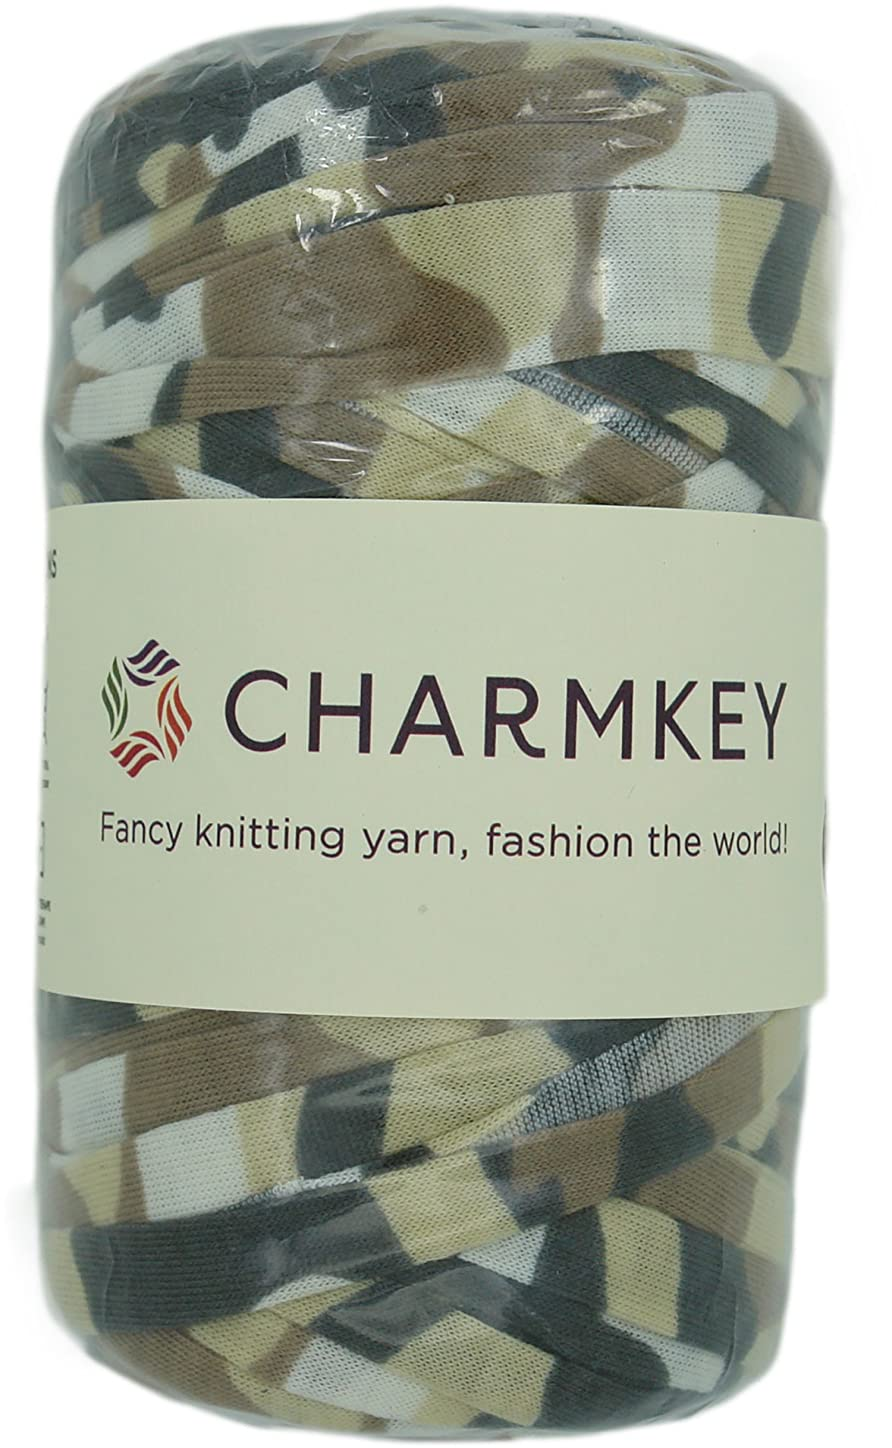 Charmkey Camouflage Print Yarn 6 Super Chunky Natural Soft Cotton Blend Ribbon T Shirt Yarn Elastic Knitting Cloth Fabric for Bags Cushion DIY Handicraft, 1 Skein, 7.05 Oounce (Desert Sand) pkwmxlm291960